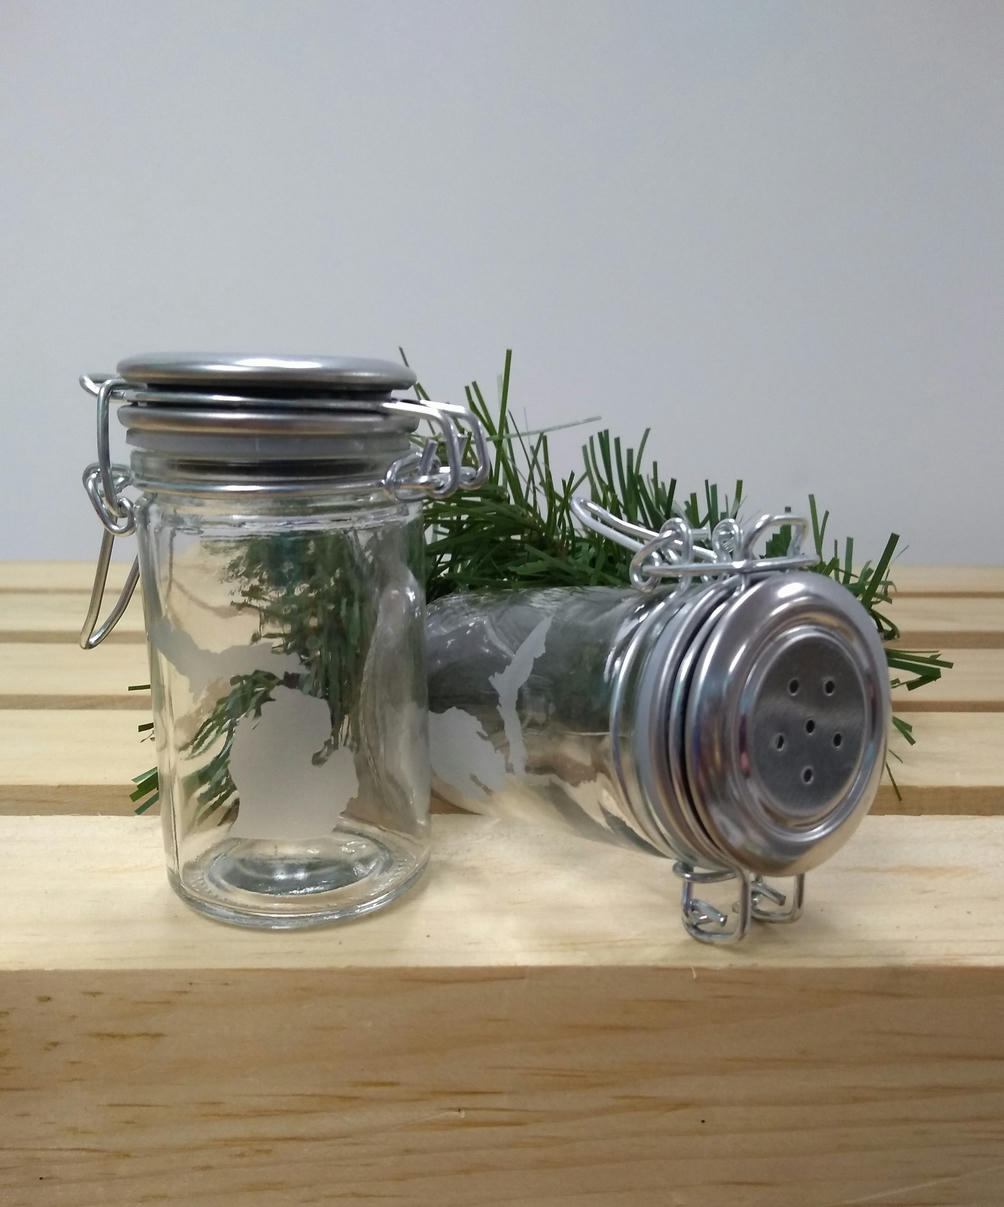 michigan-themed-items-etched-salt-and-pepper-shakers